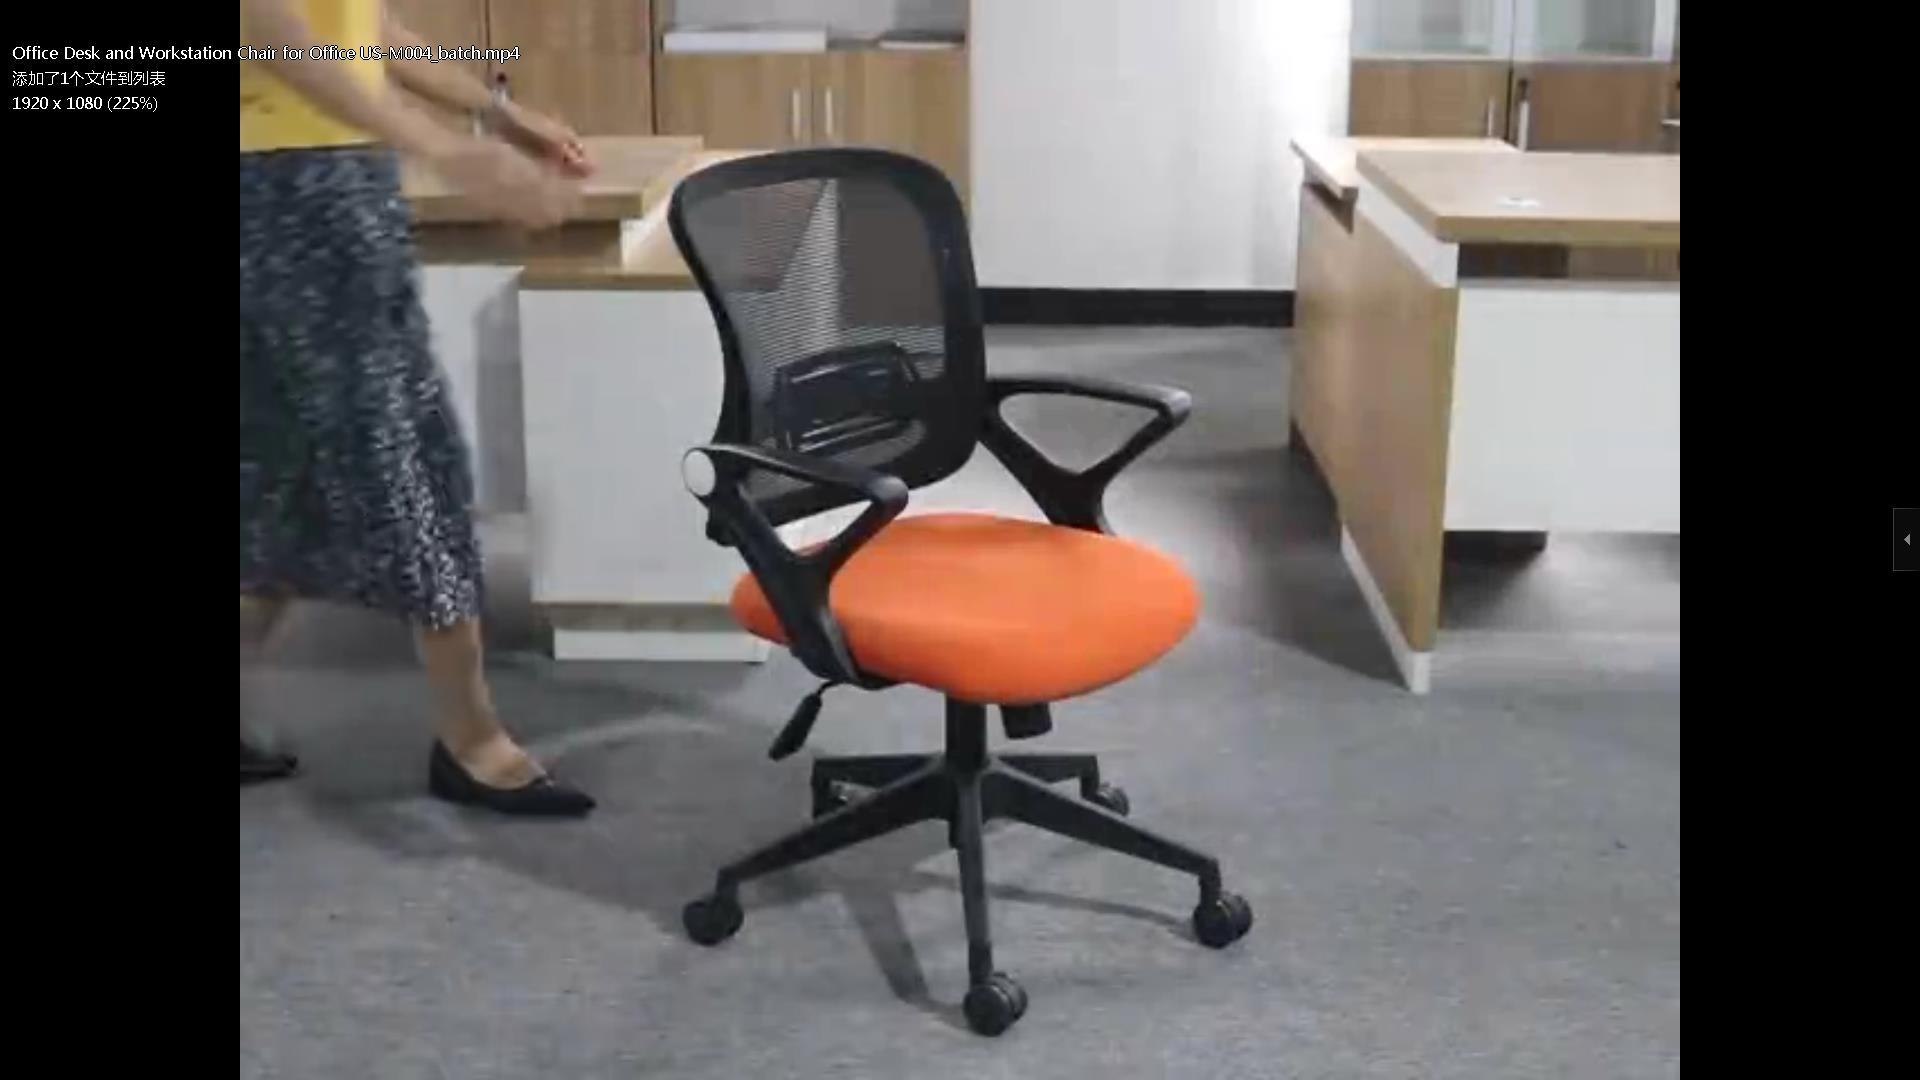 Office Desk and Workstation Chair for Office US-M004